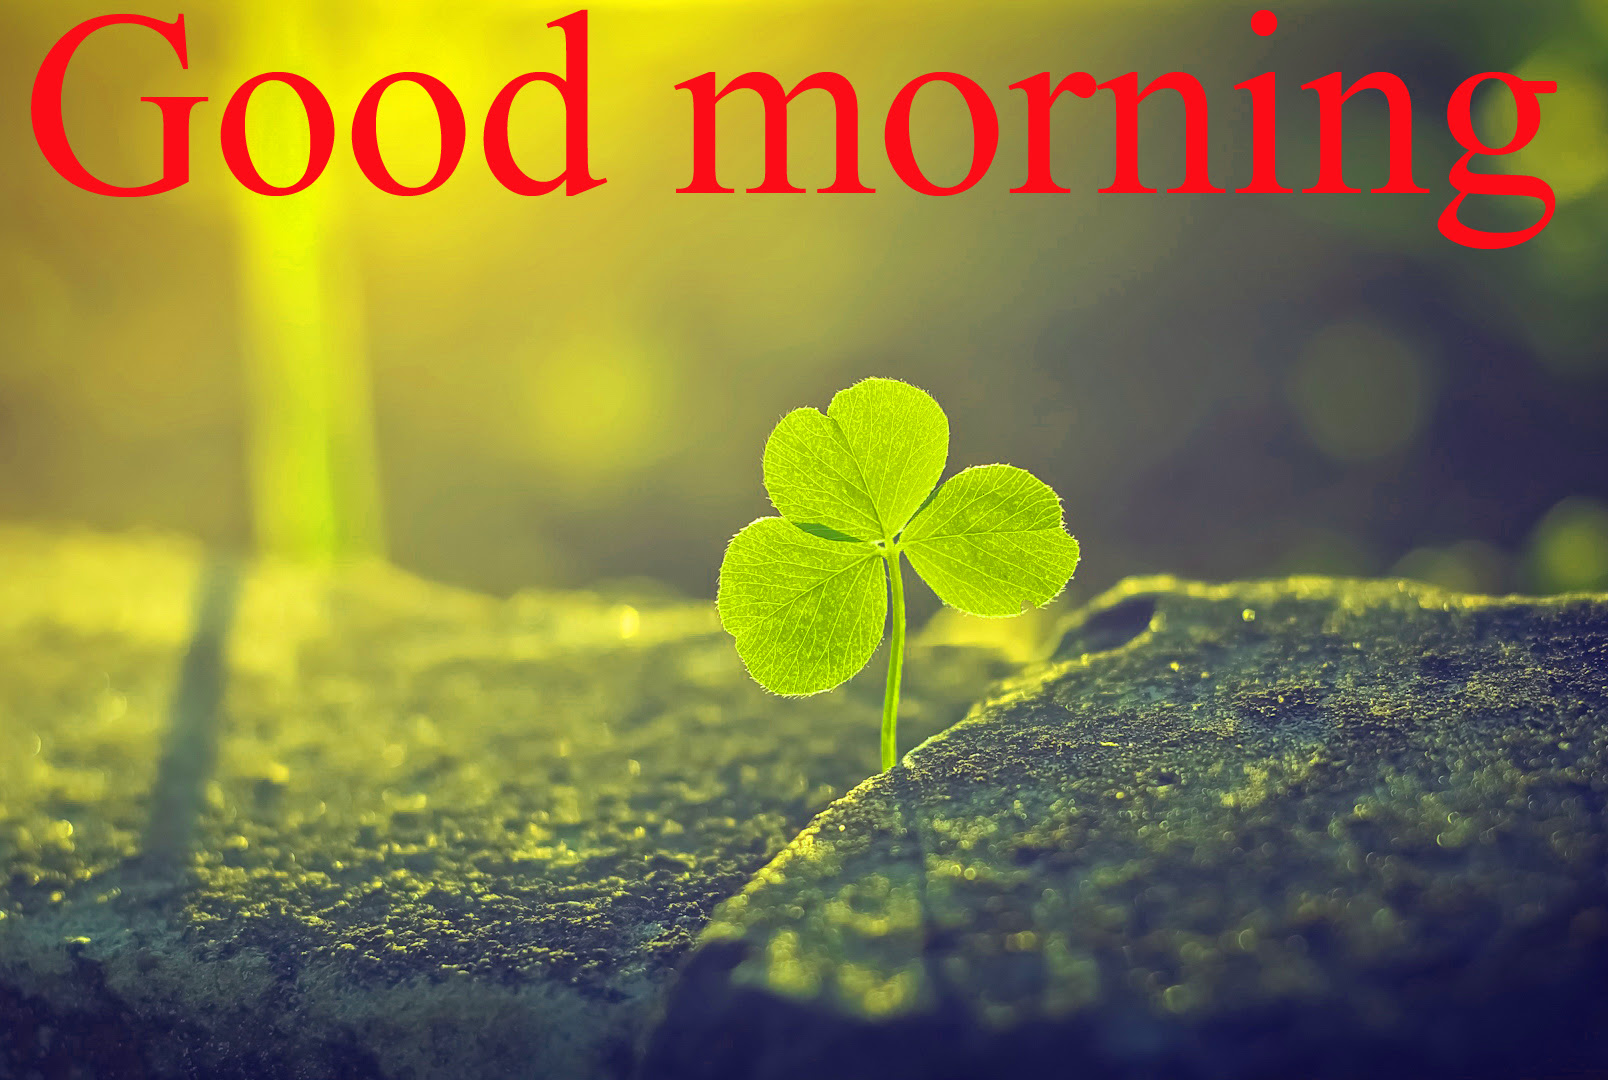 Good Morning And Good Luck Wishes For Student Exam Interview